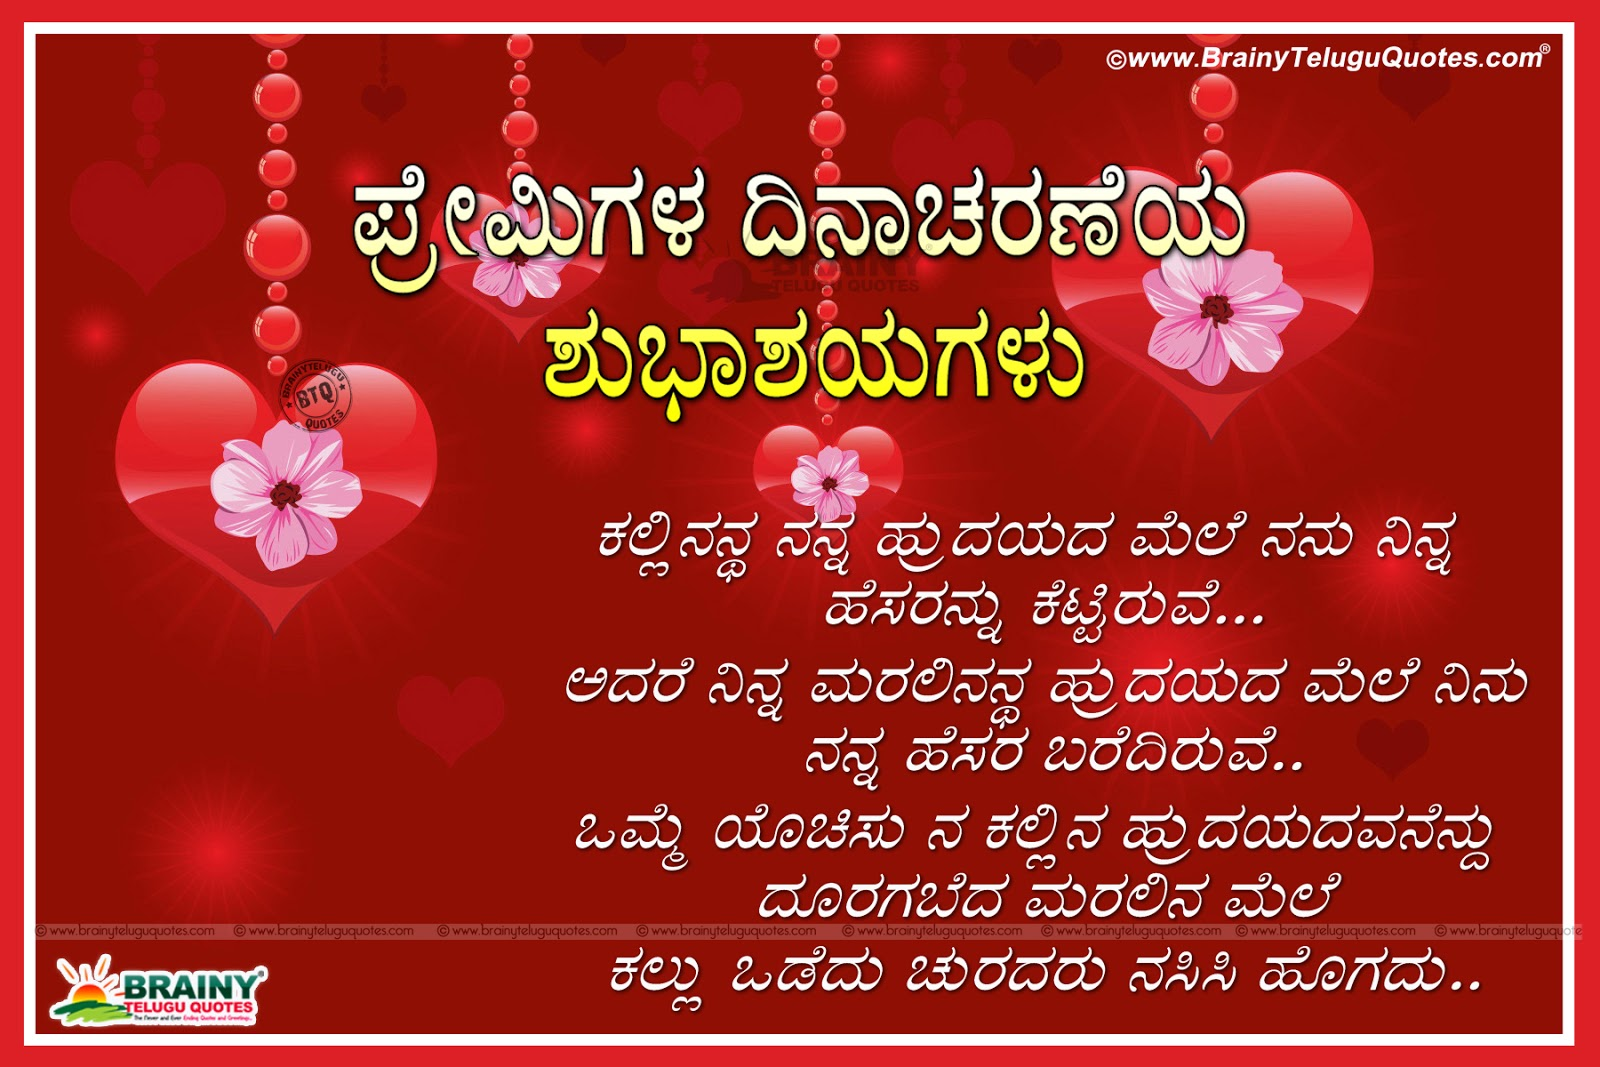 Famous Kannada Language Valentines Day Wishes Quotes With Flower Hd Wallpapers Kannada Love Kannada